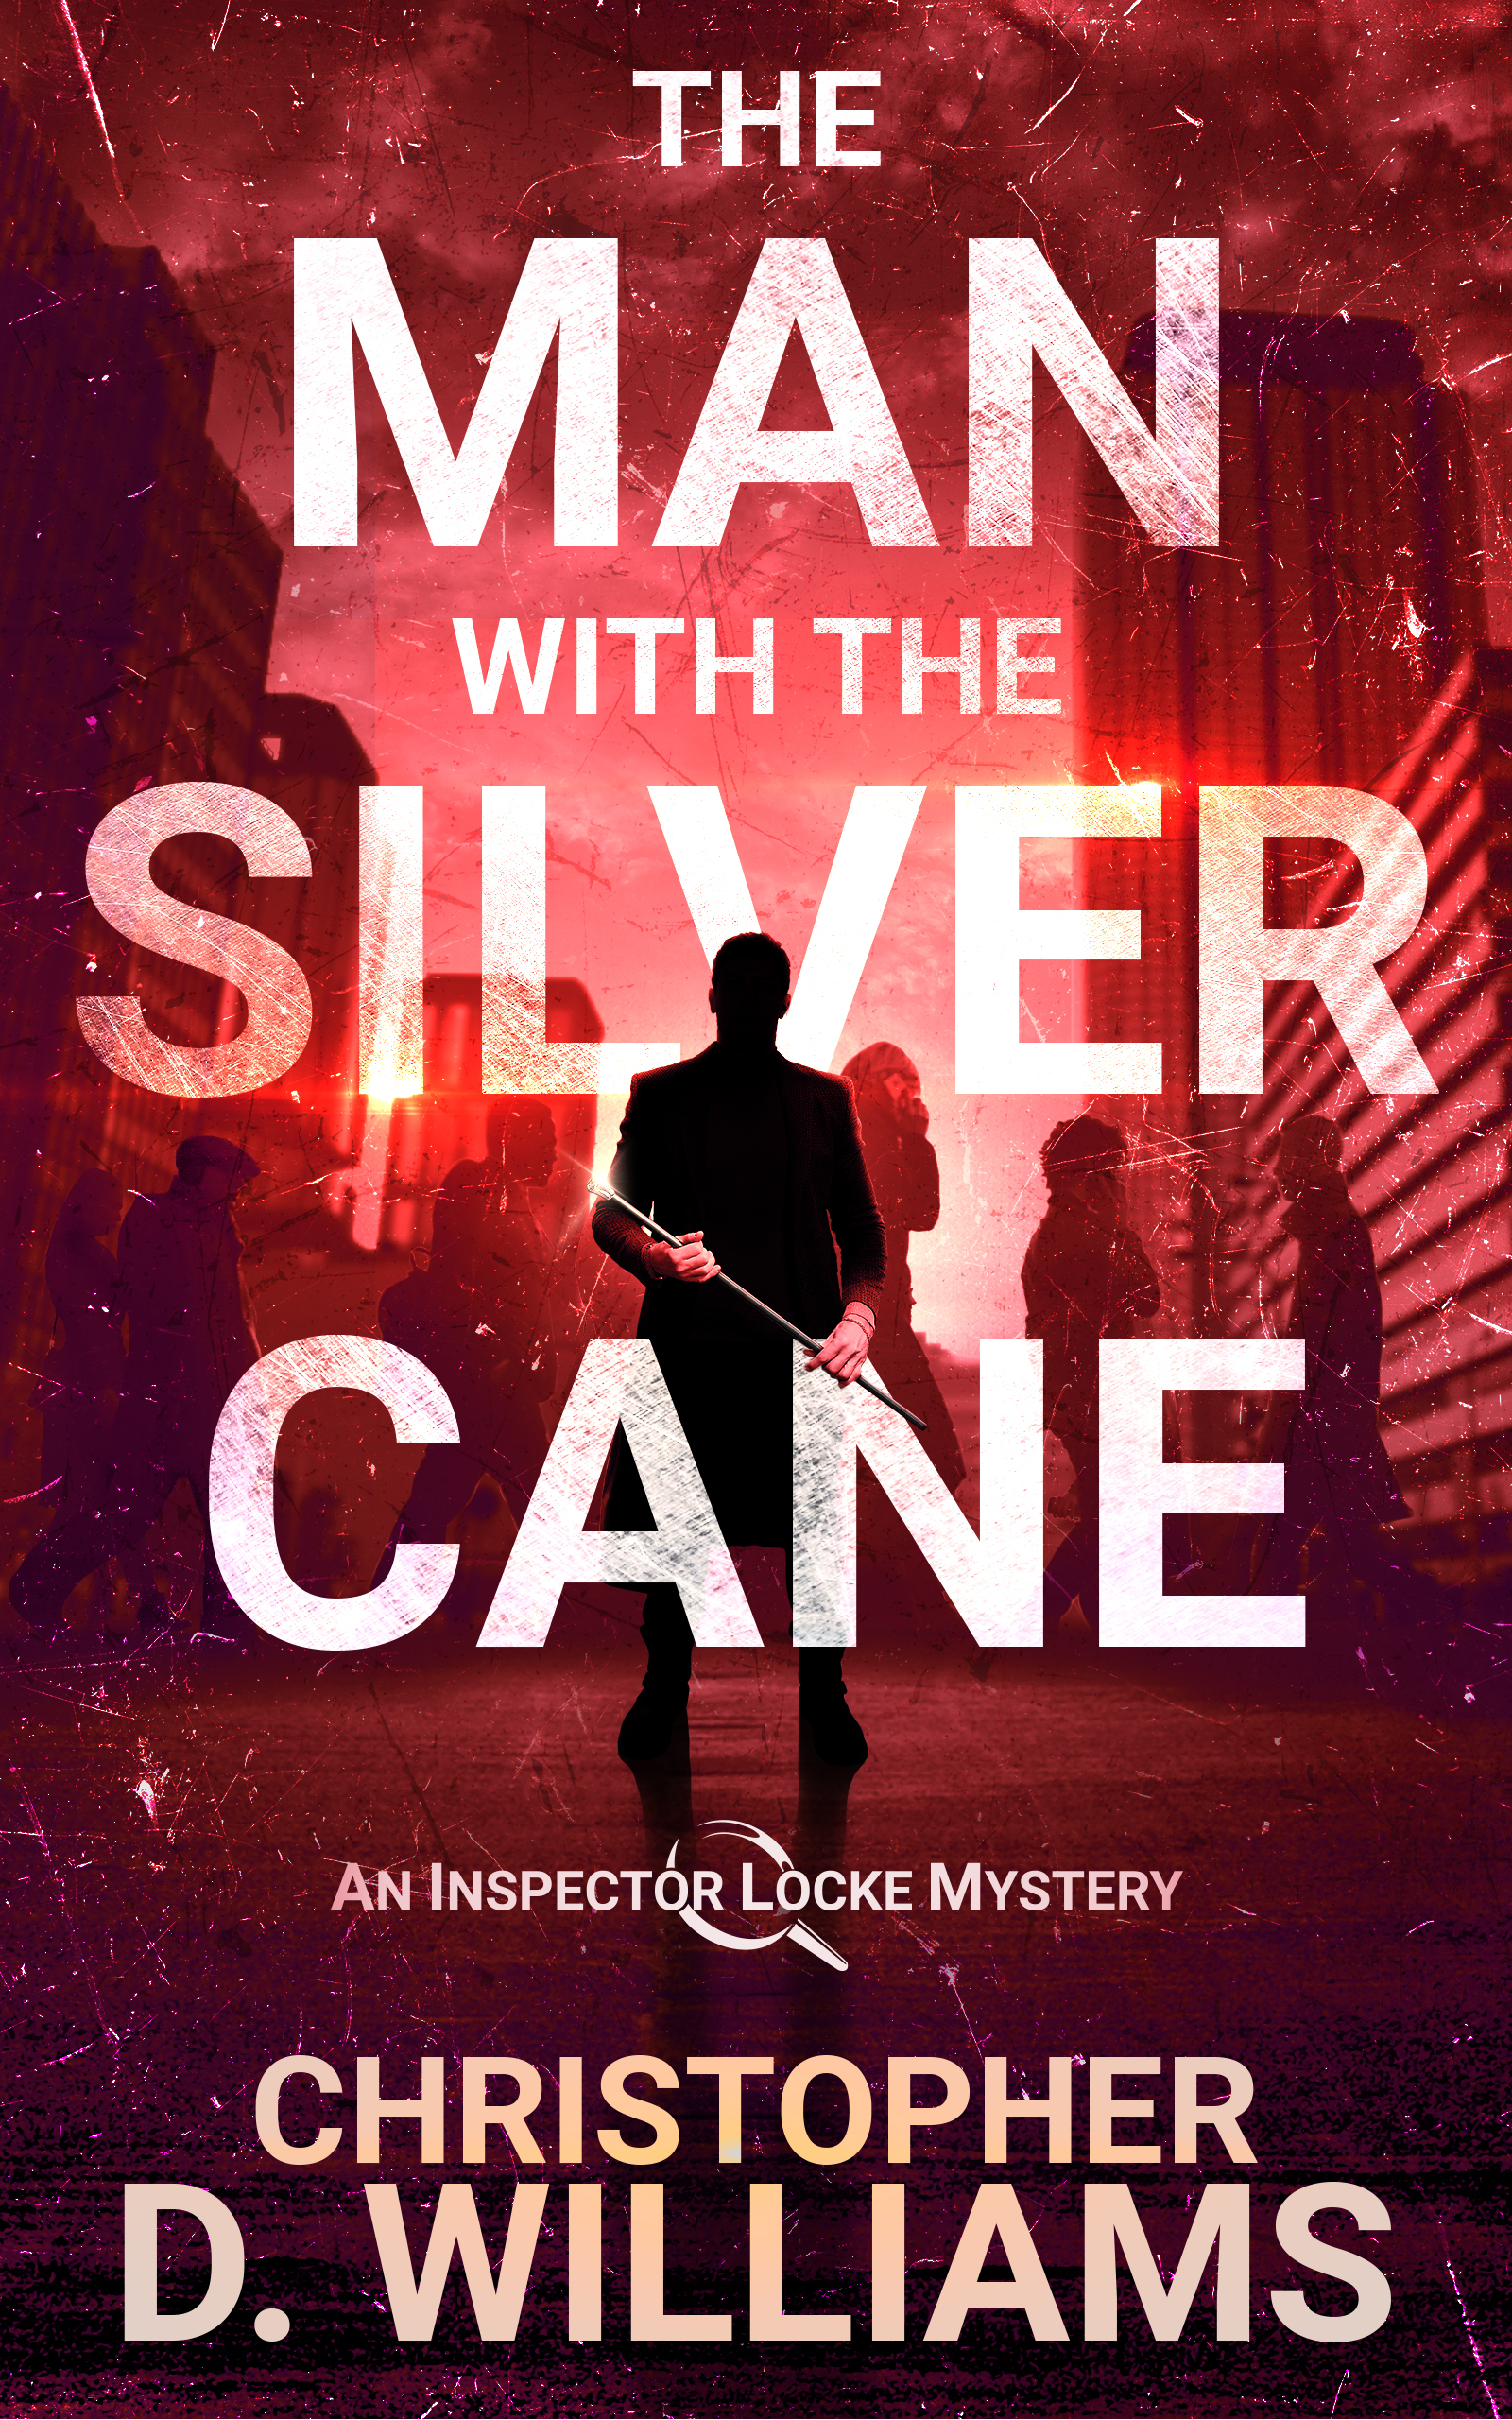 The Man with the Silver Cane - New 2021 Cover